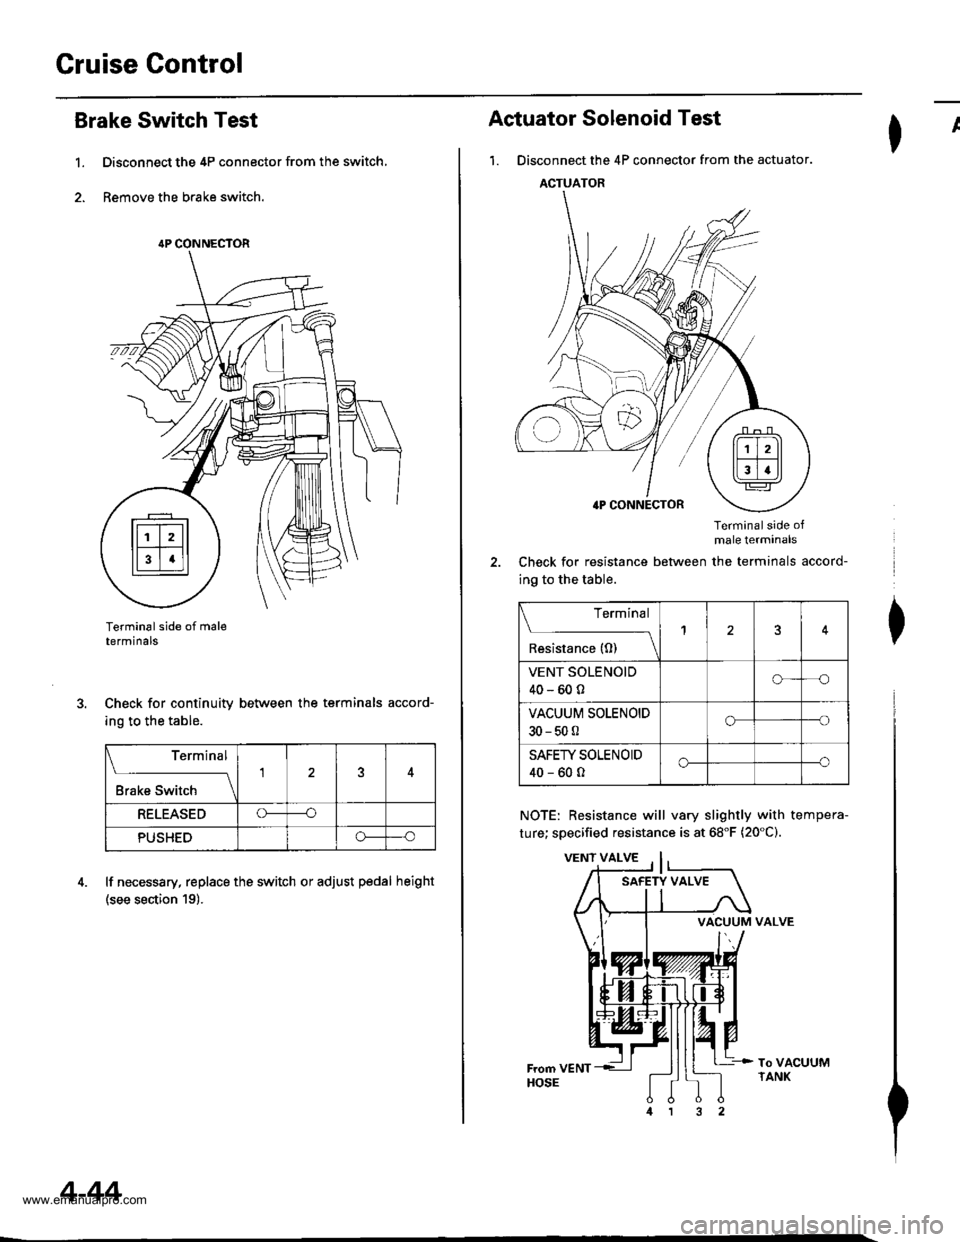 HONDA CR-V 1998 RD1-RD3 / 1.G Workshop Manual  Cruise Control Brake Switch Test 1. Disconnect the 4P connector from the switch, 2. Remove the brake switch. Terminal side of maletermtnals Check for continuity between the terminals accord- ing to t